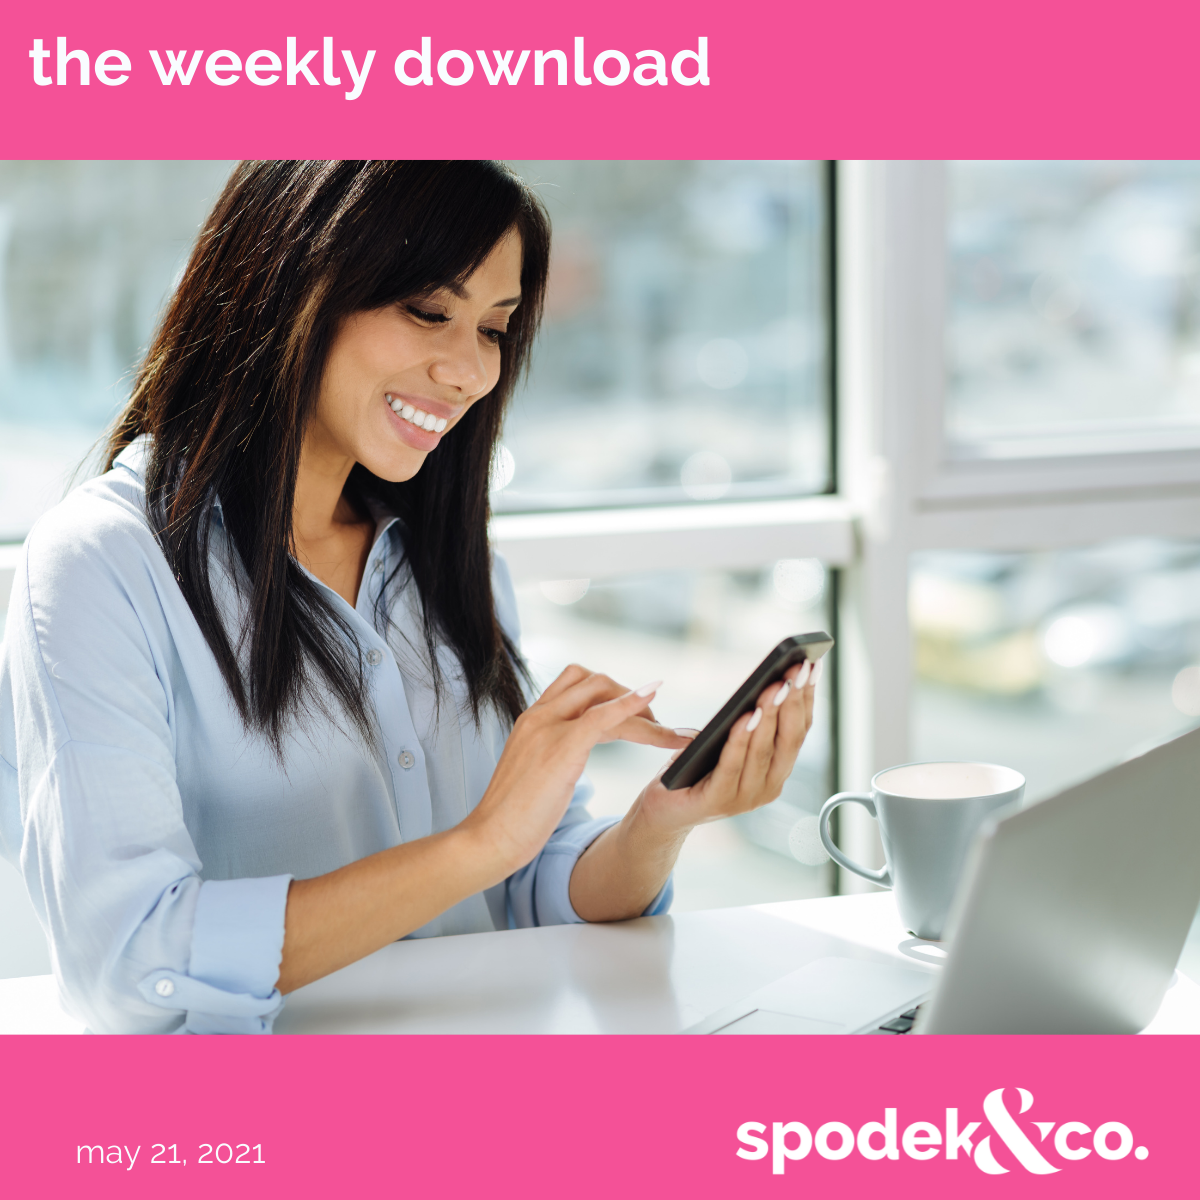 The Weekly Download – May 21, 2021